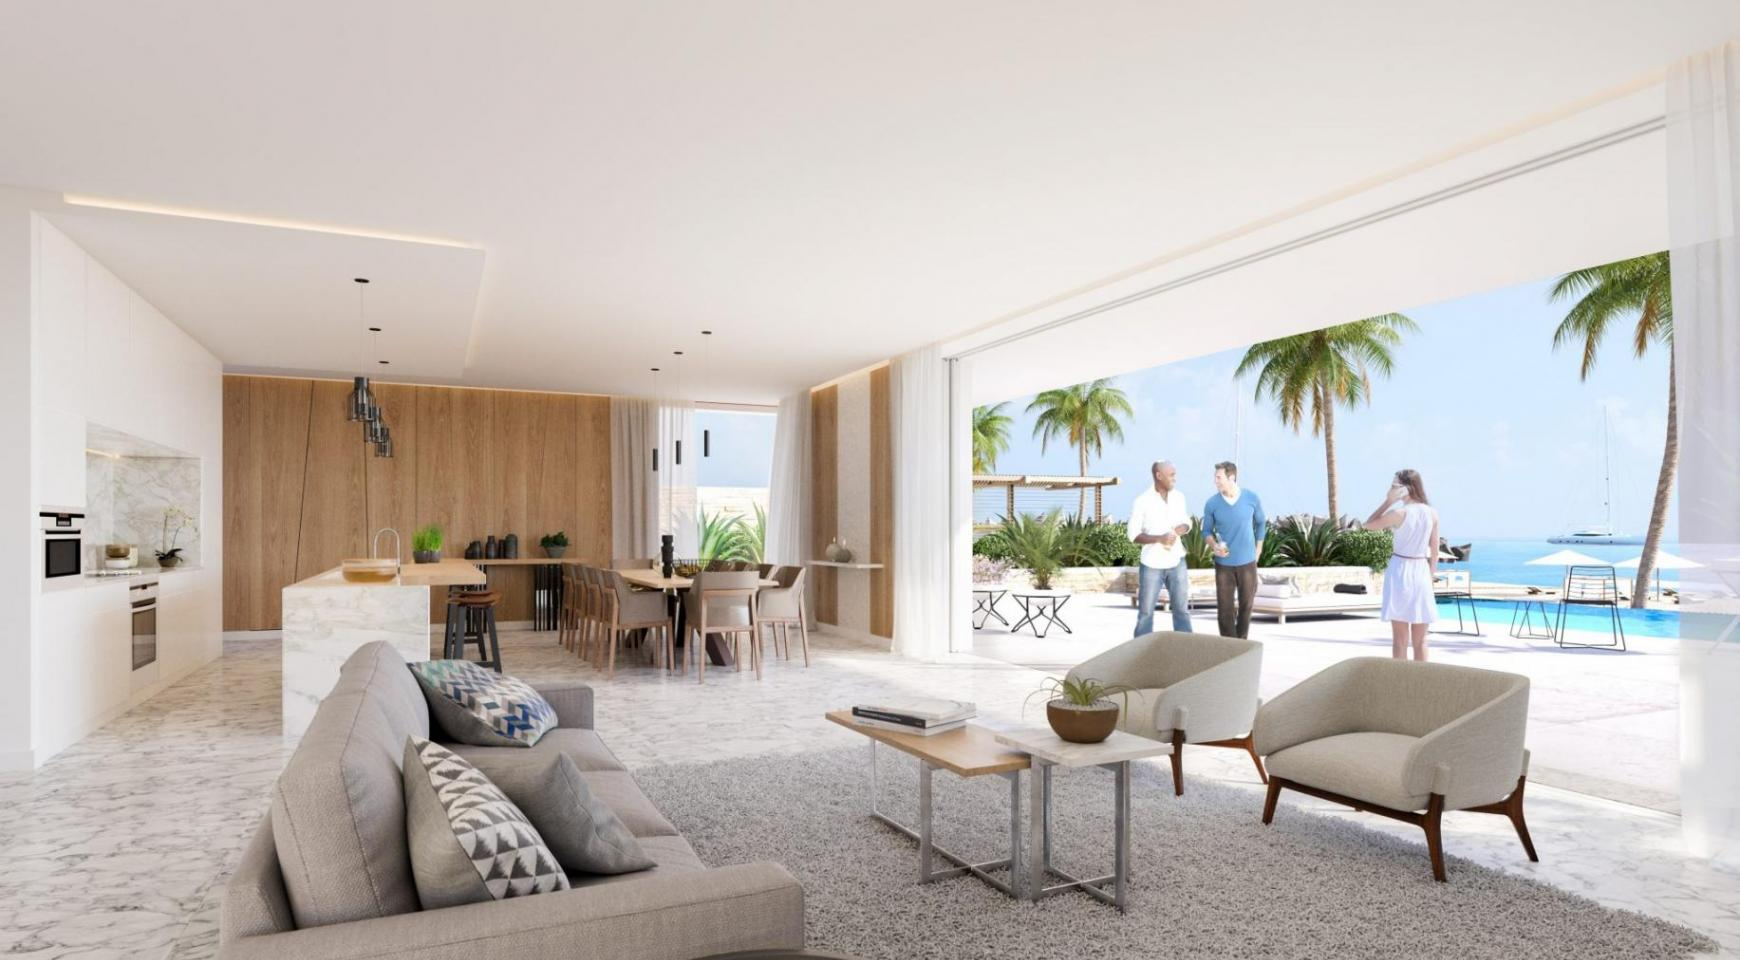 Stunning 3 Bedroom Villa in an Exclusive Project by the Sea - 1